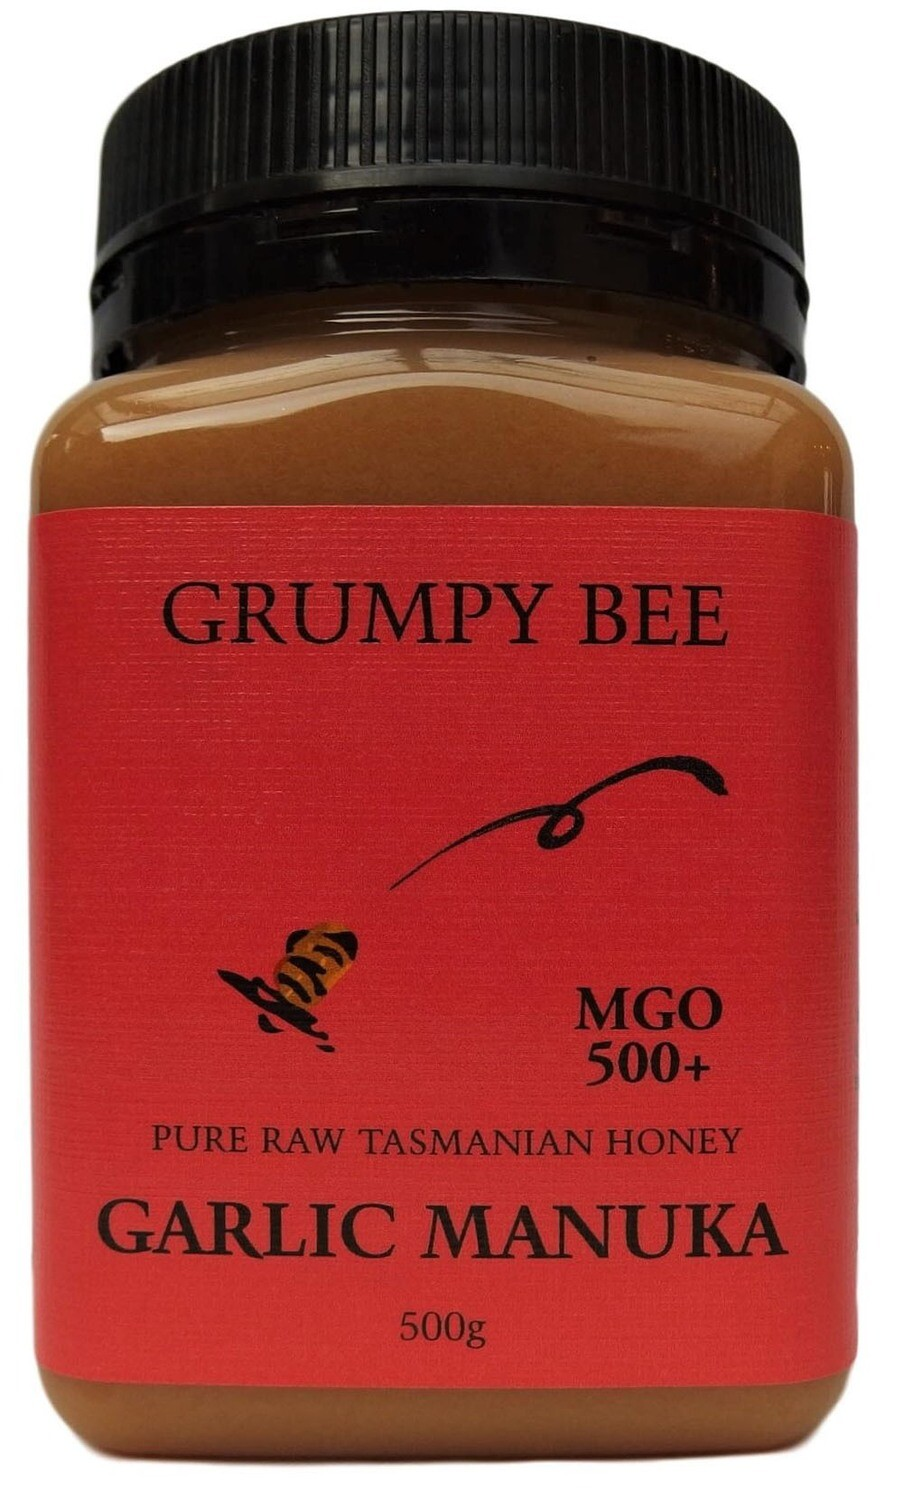 Grumpy Bee Garlic Manuka Honey MGO 500+ 500g